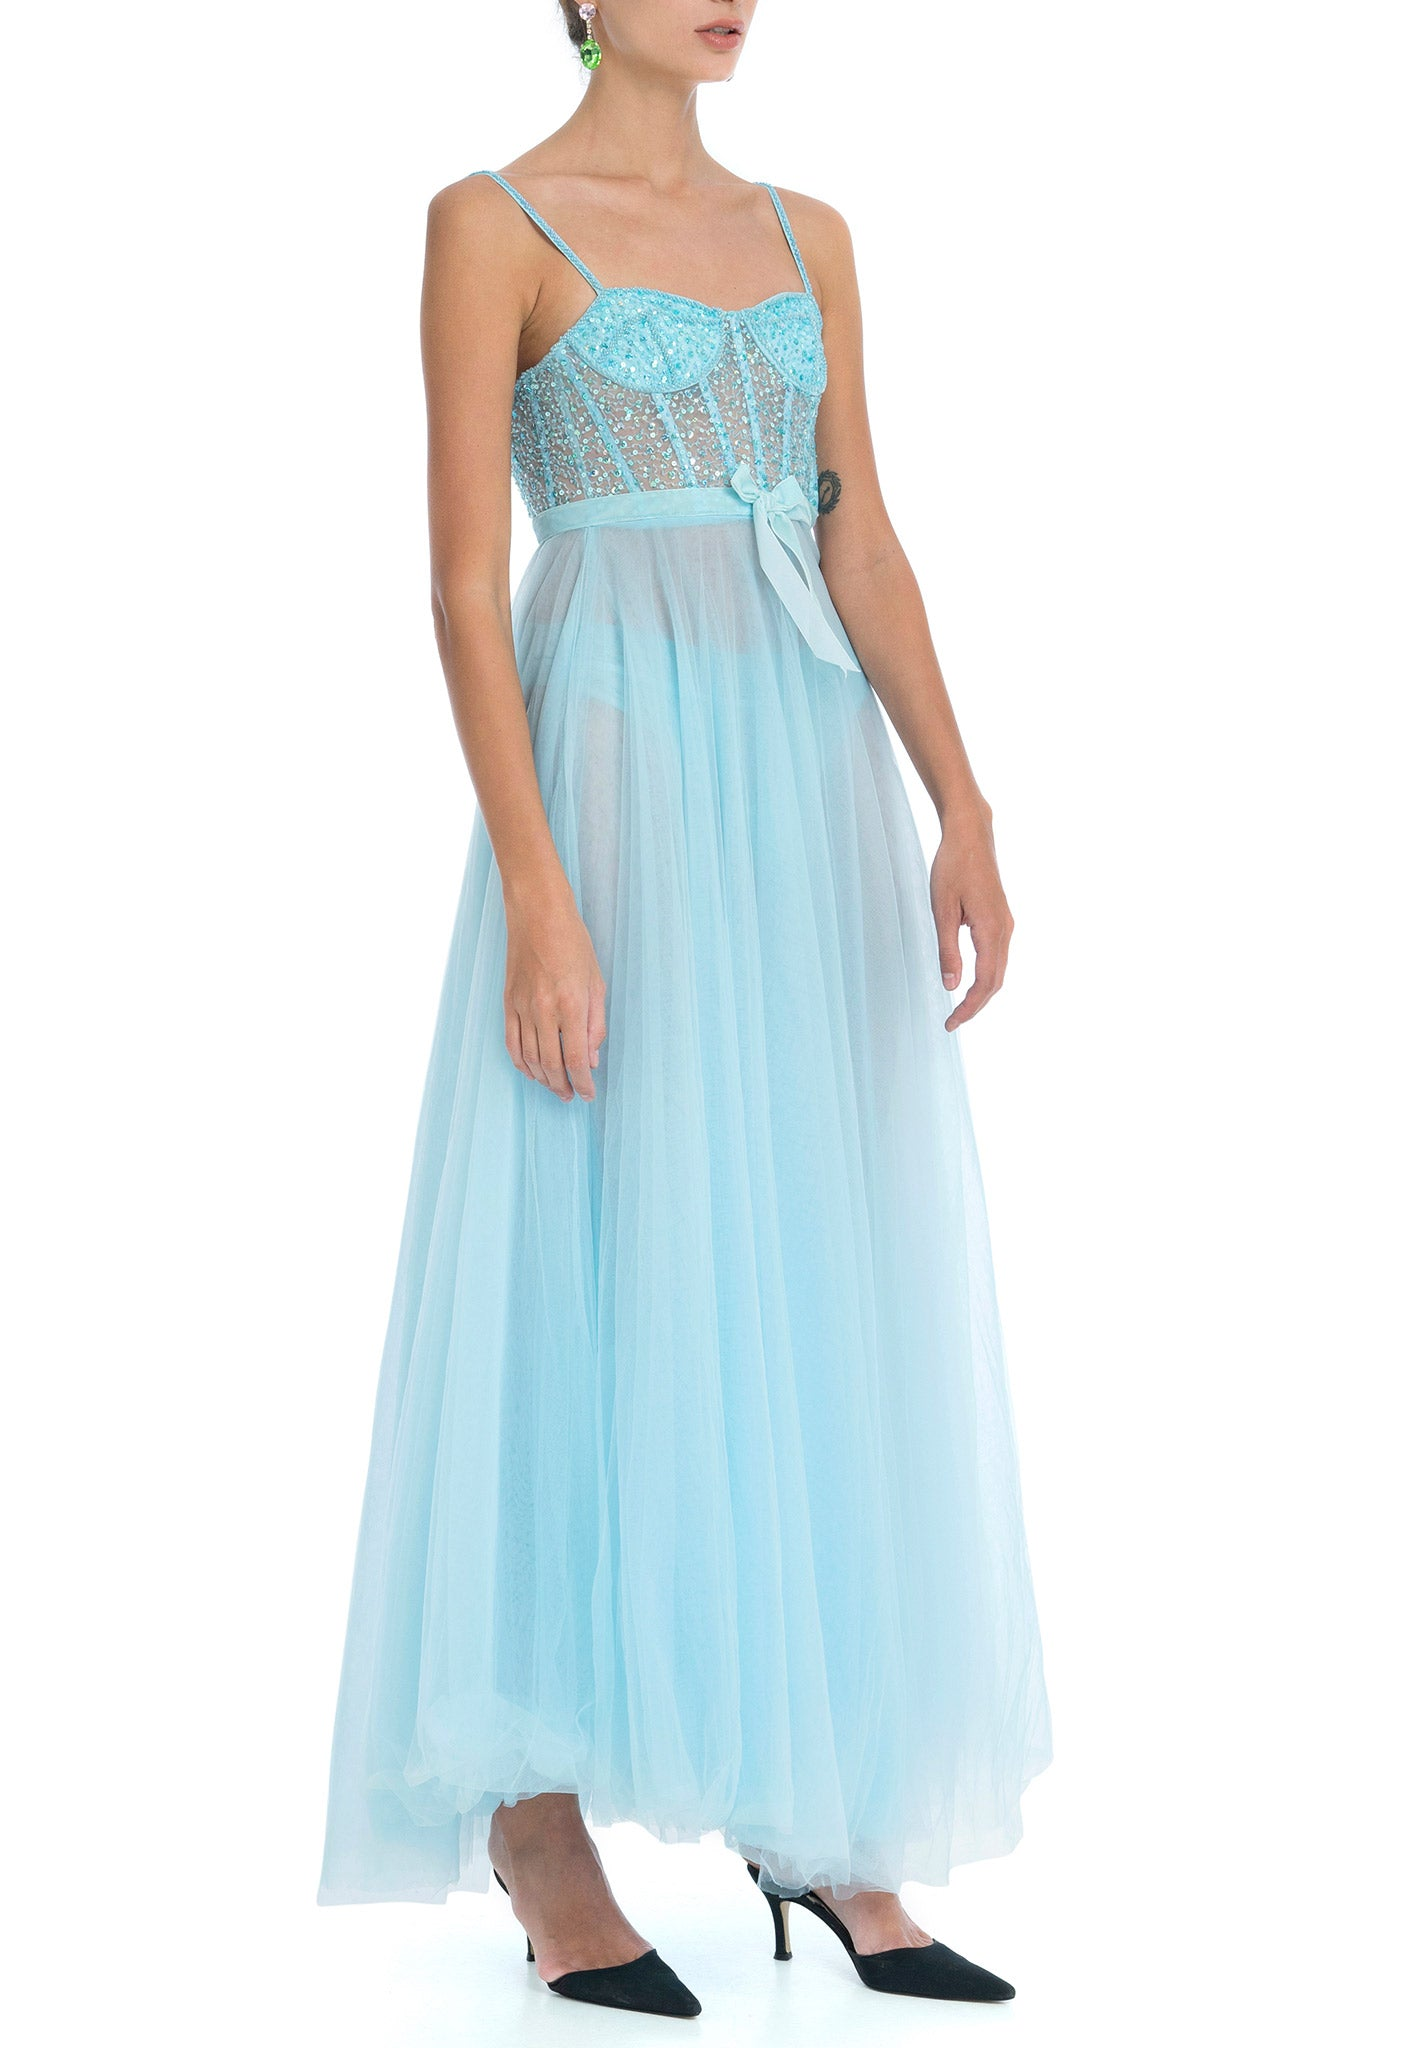 https://cdn.shopify.com/s/files/1/1129/2532/files/Nephele-Gown-Dyspnea-1.mp4?2886